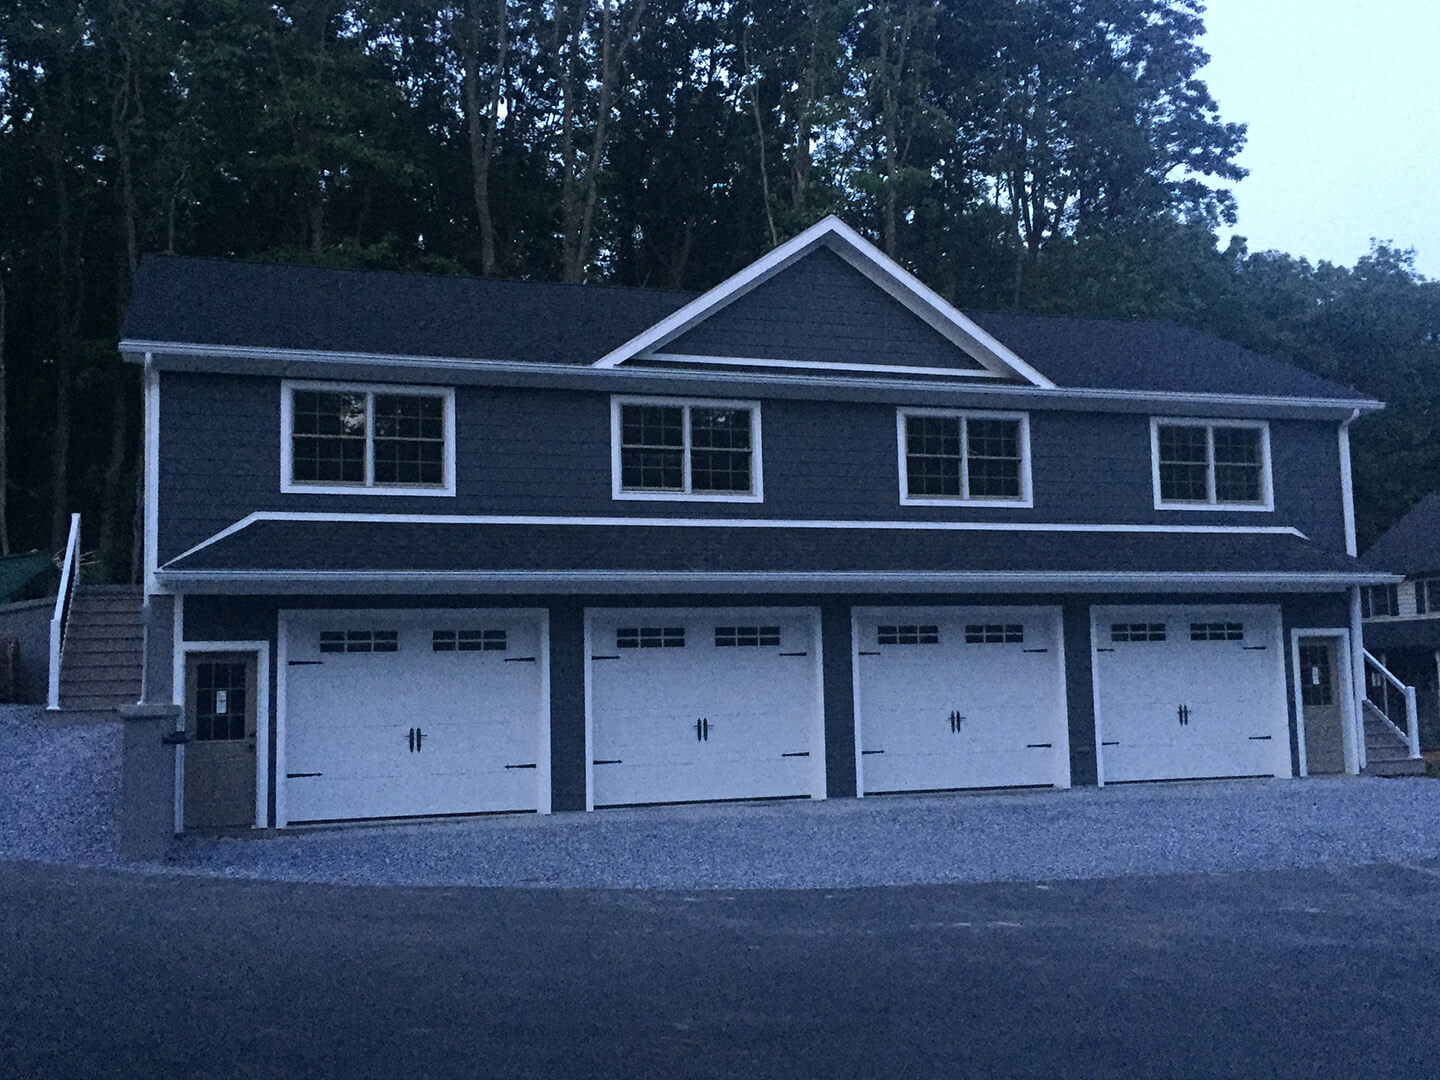 4 Car Garage with Finished Office Space Above